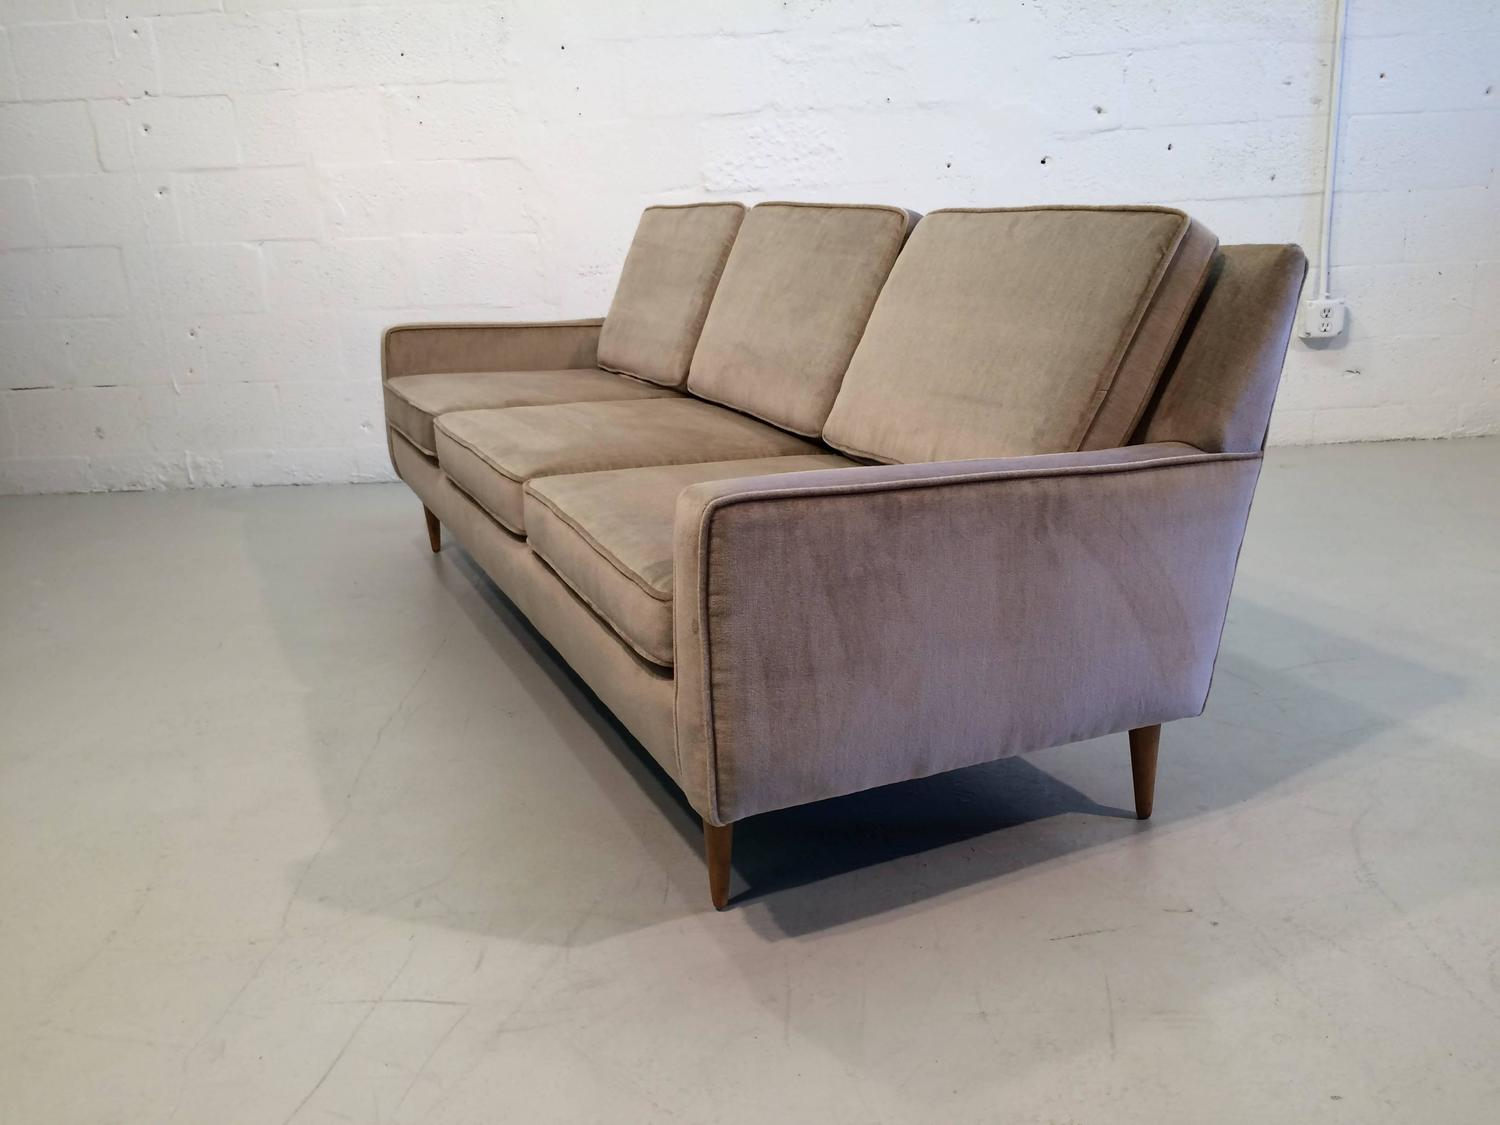 Original mid century modern sofa for sale at 1stdibs for Mid century modern sofa for sale